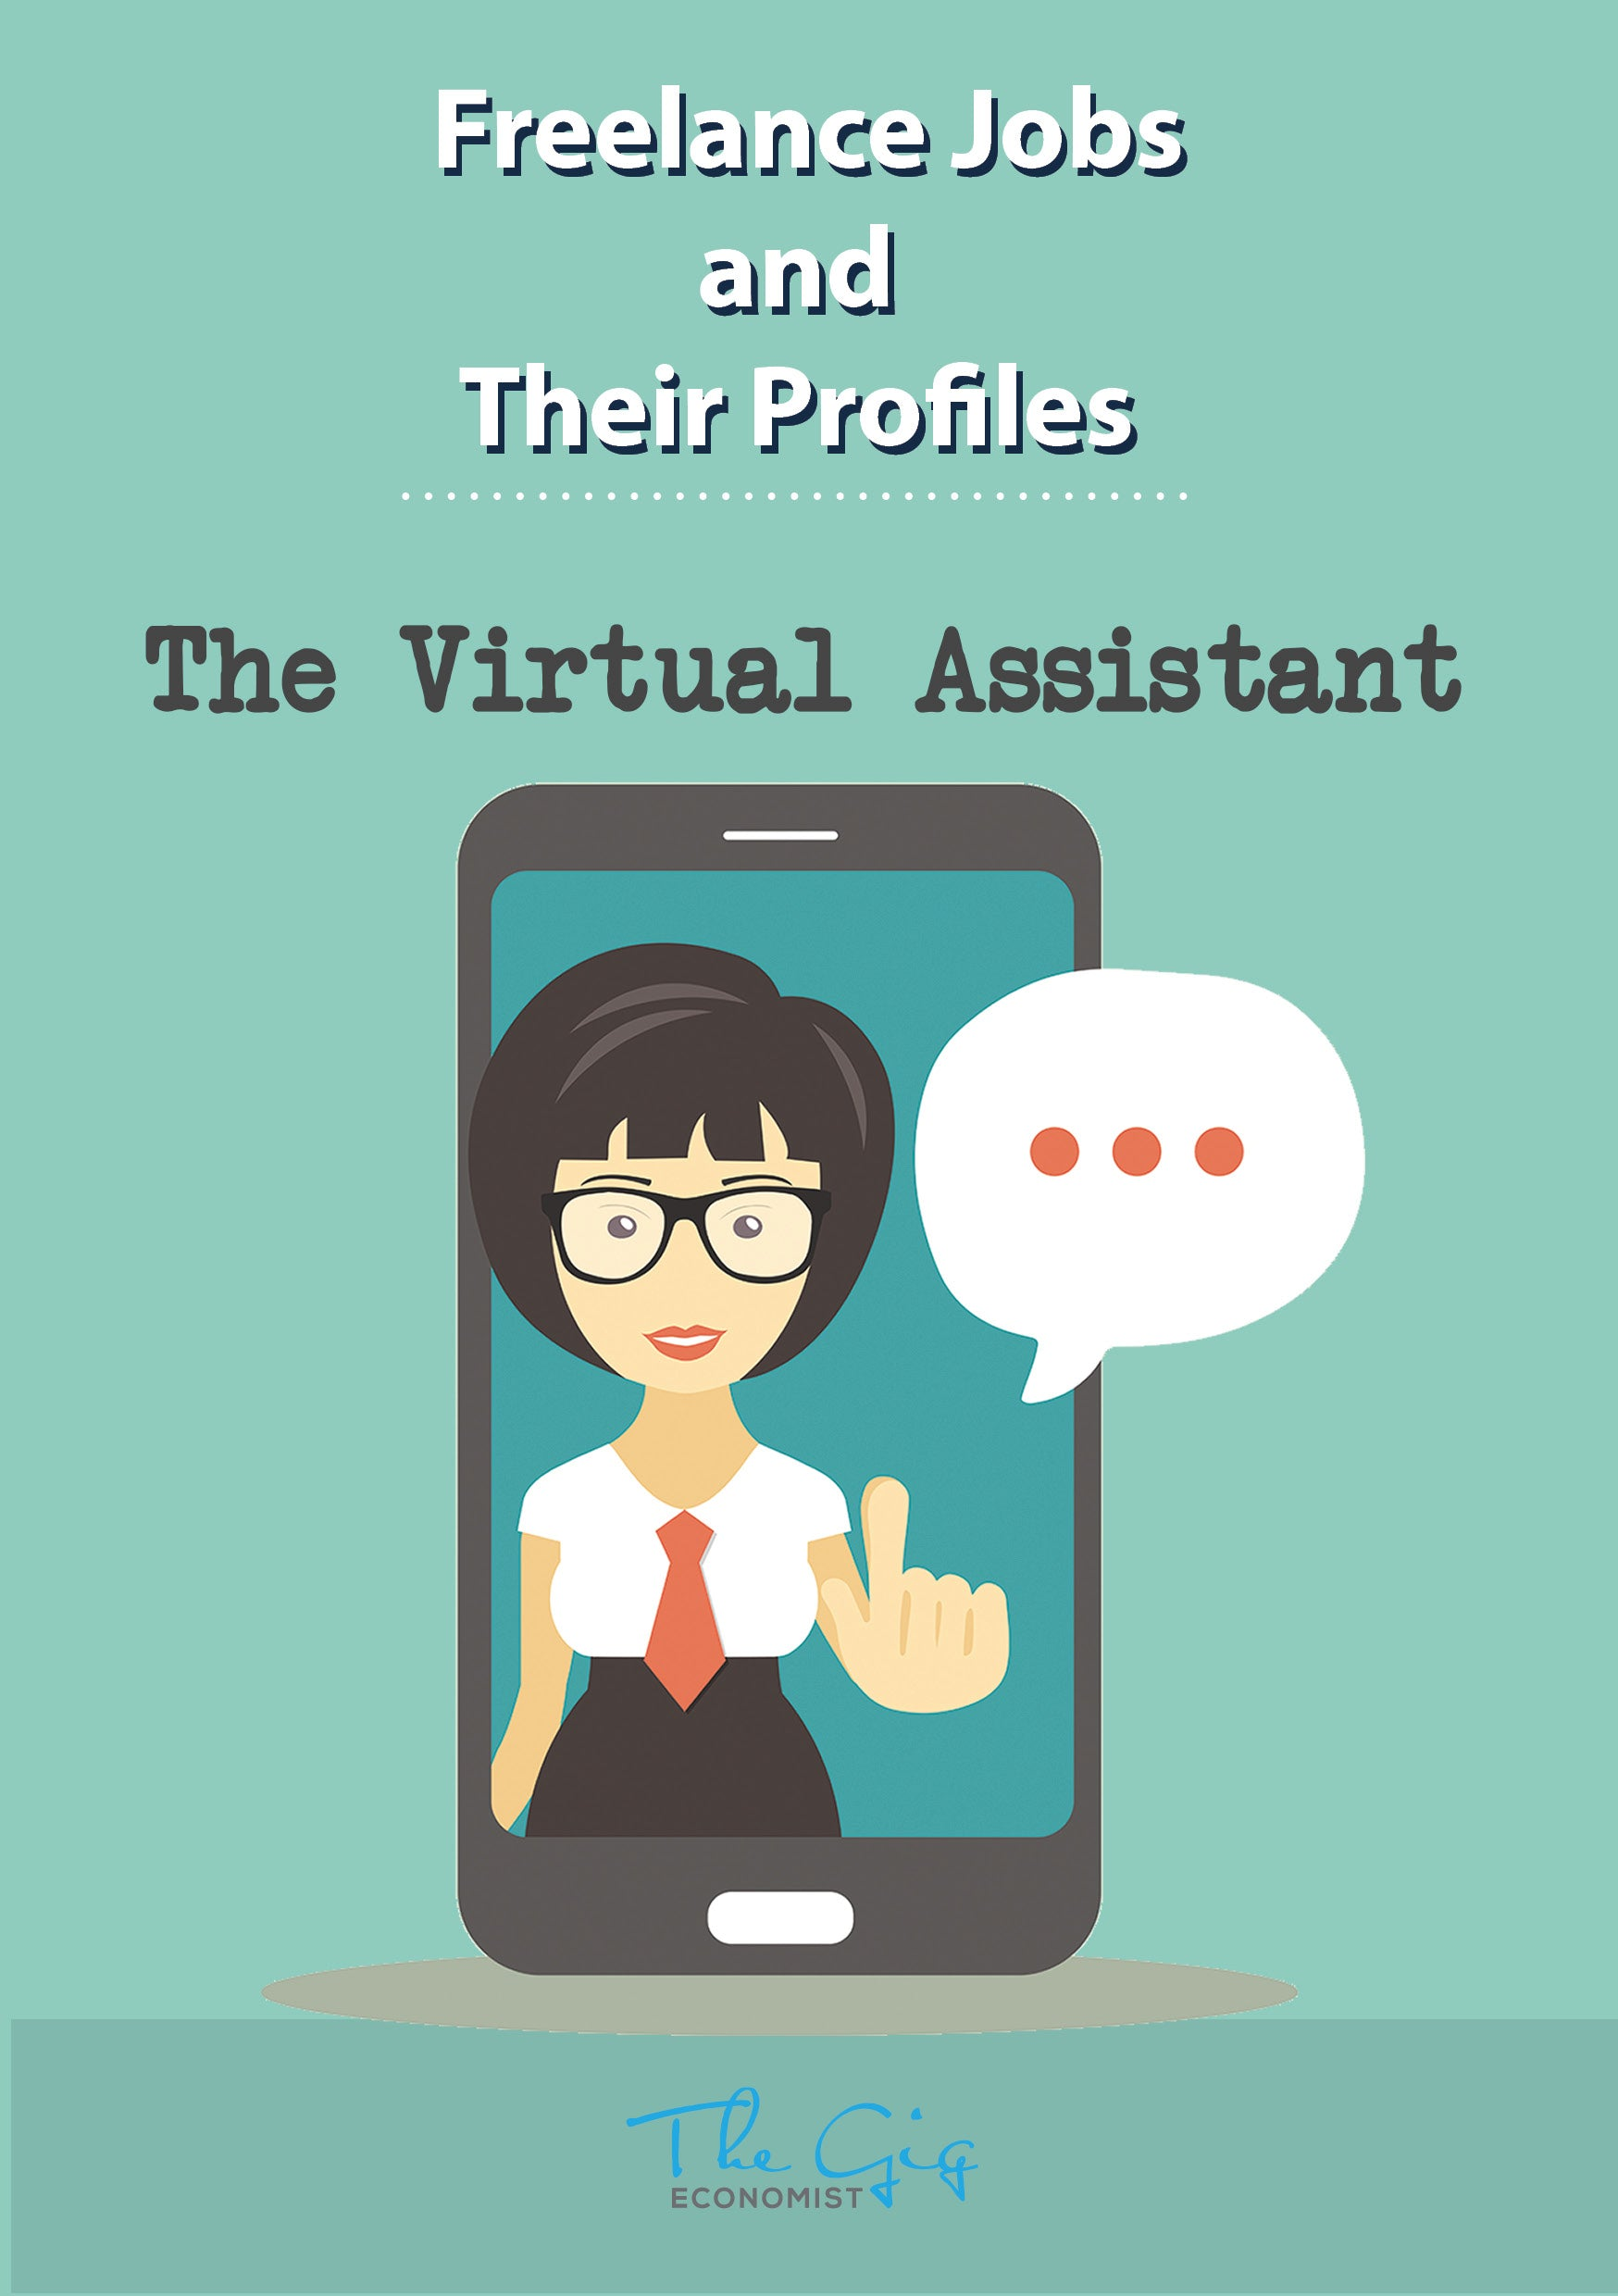 Freelance Virtual Assistant Job Profile | The Gig Economist